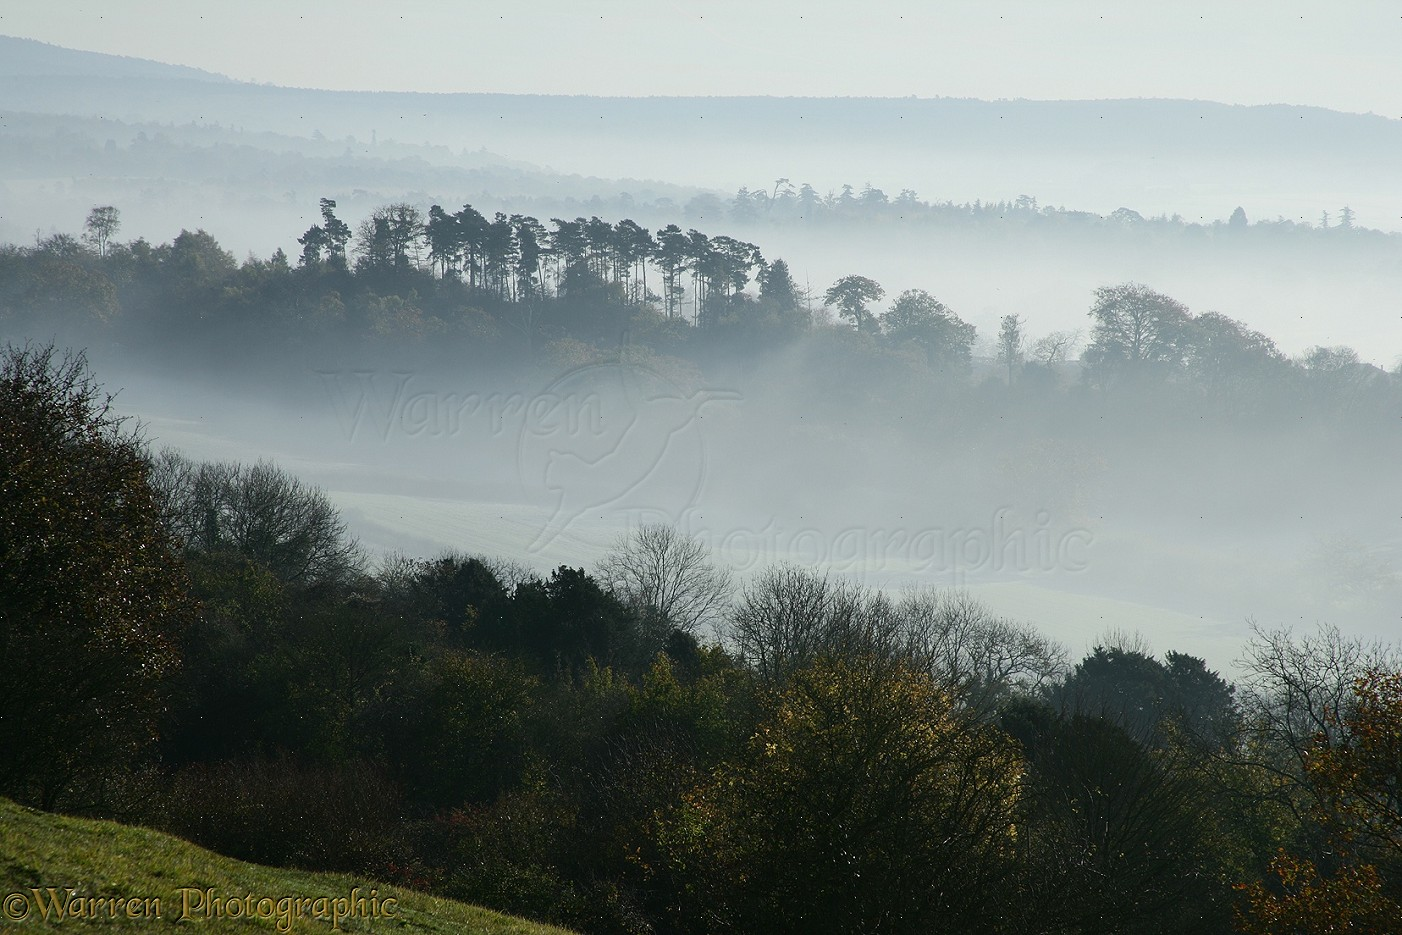 Early december morning in the heart of the surrey hills